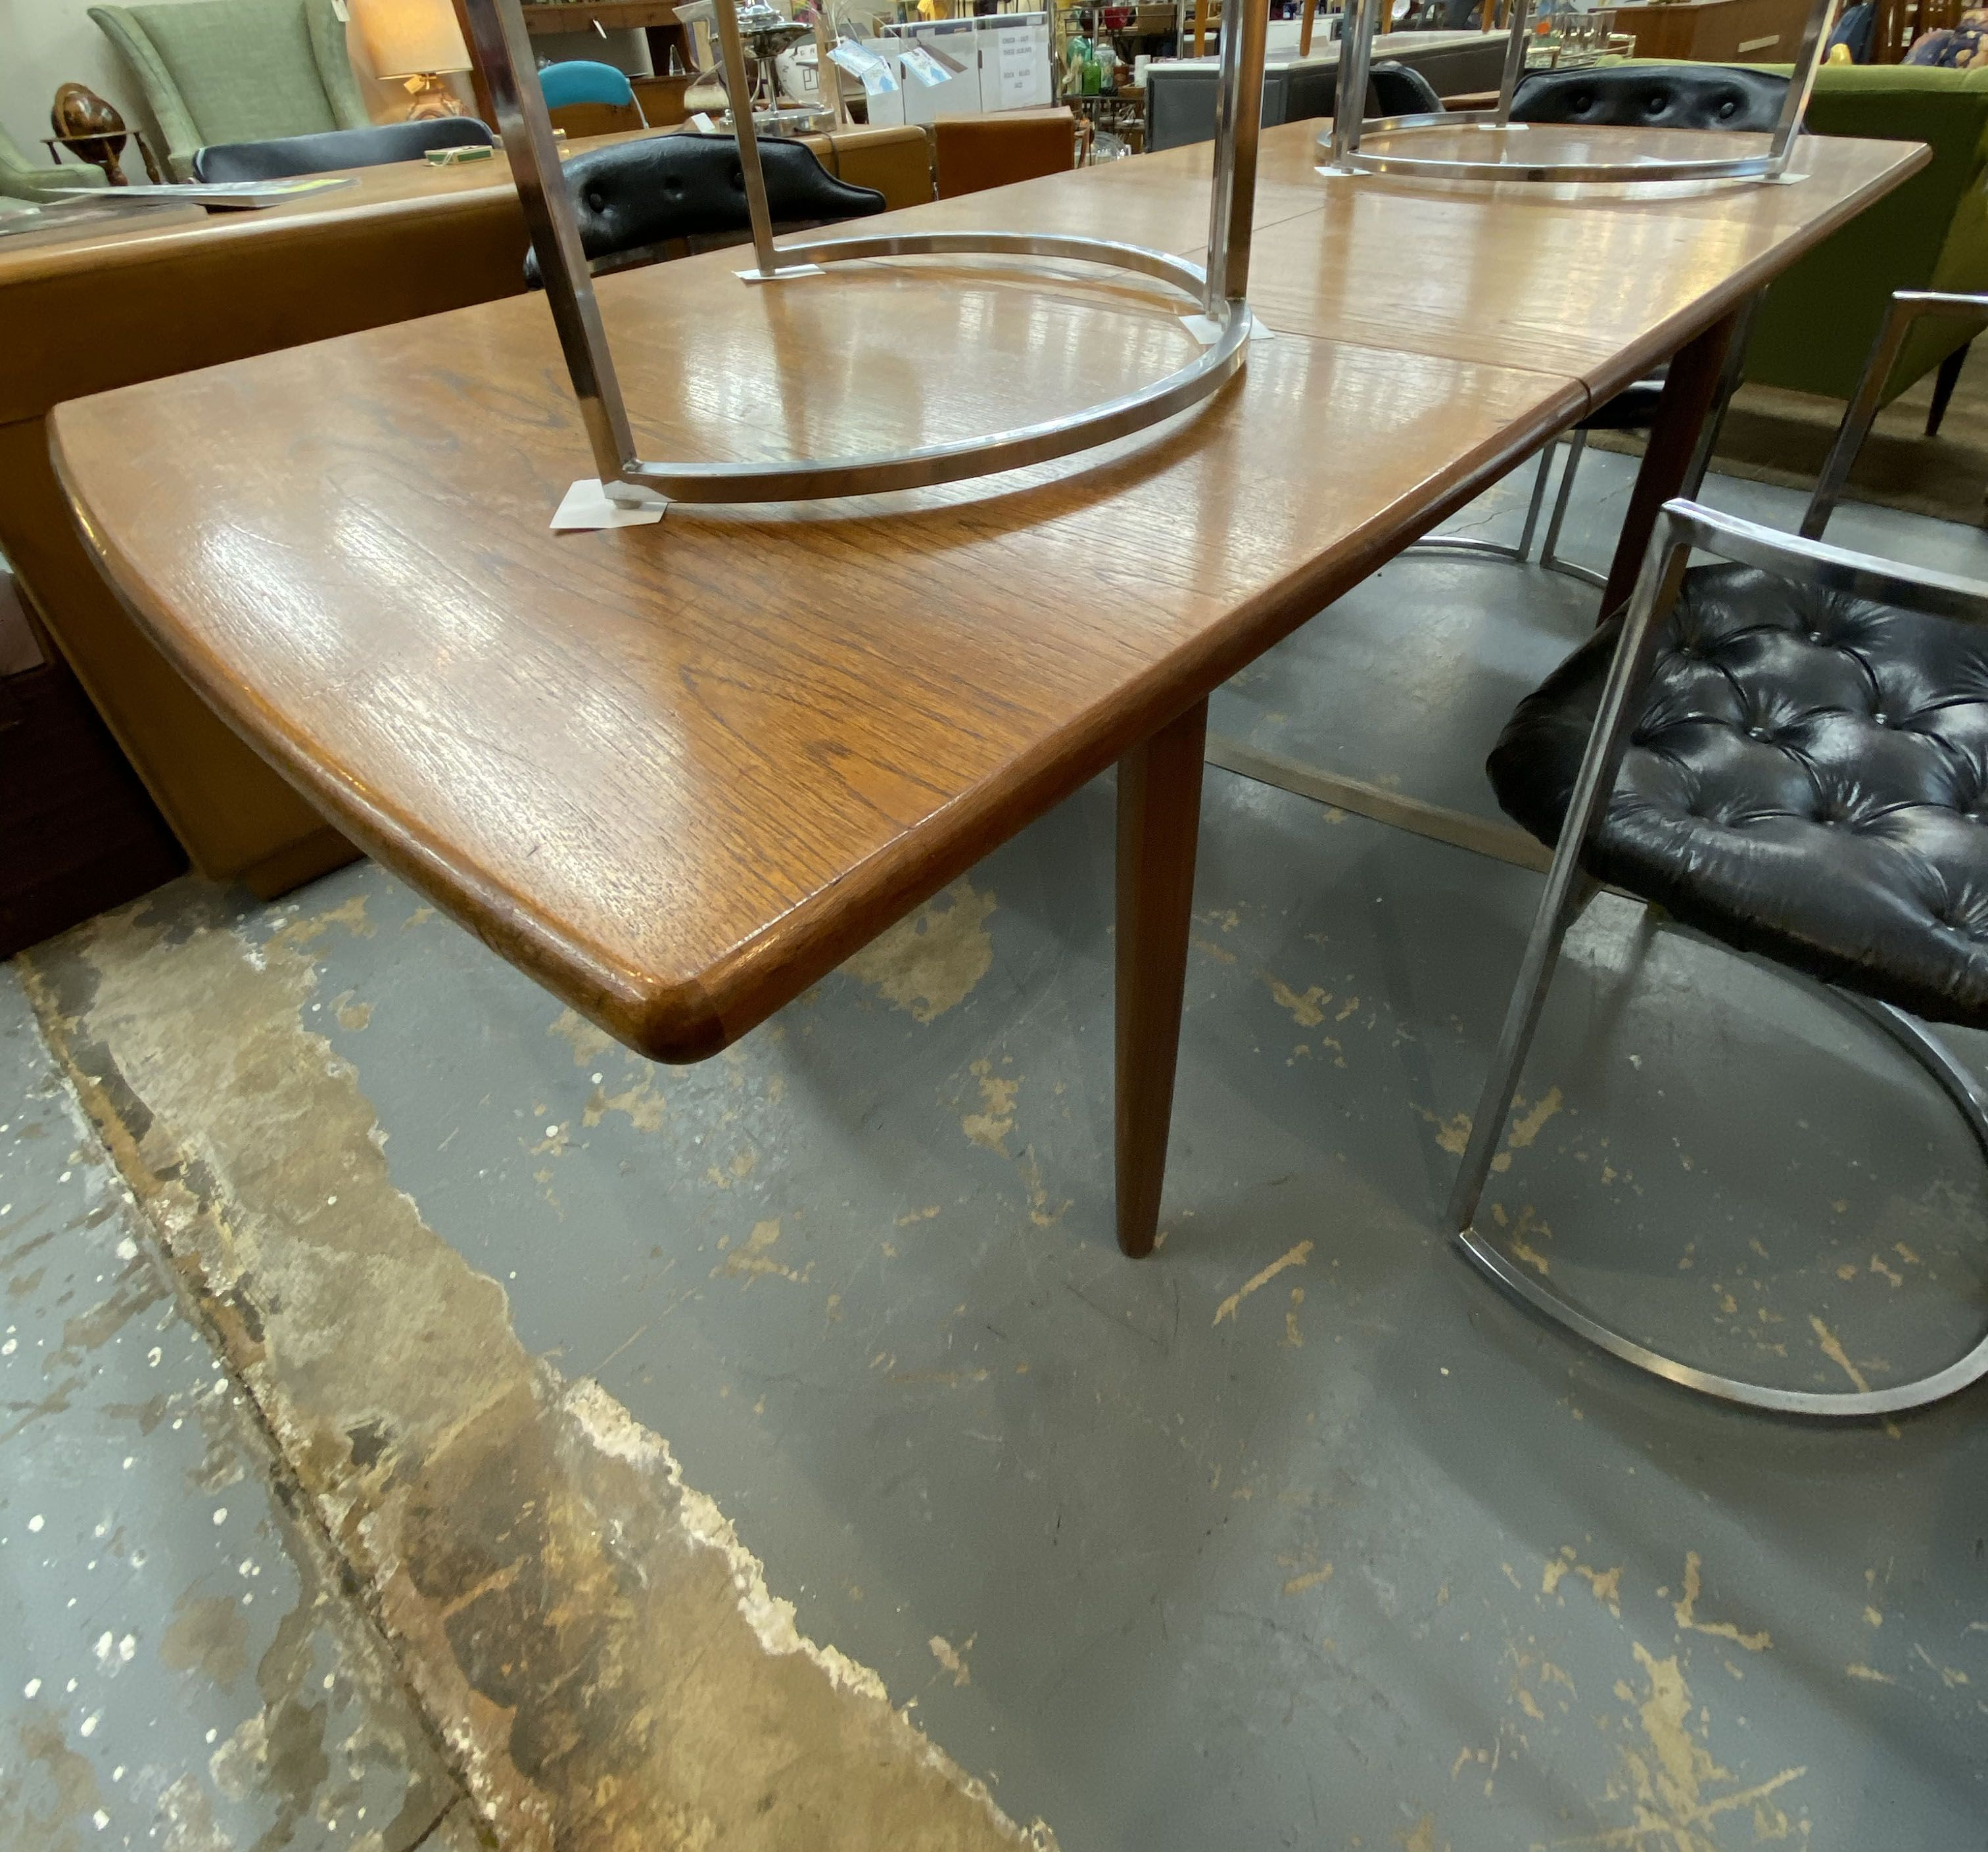 Mid Century Modern Danish Teak Dining Table With Eight Chairs On Sale Has 2 20 Extensions Was 1570 Sale Price 1100 With Images Teak Dining Table Home Decor Chair